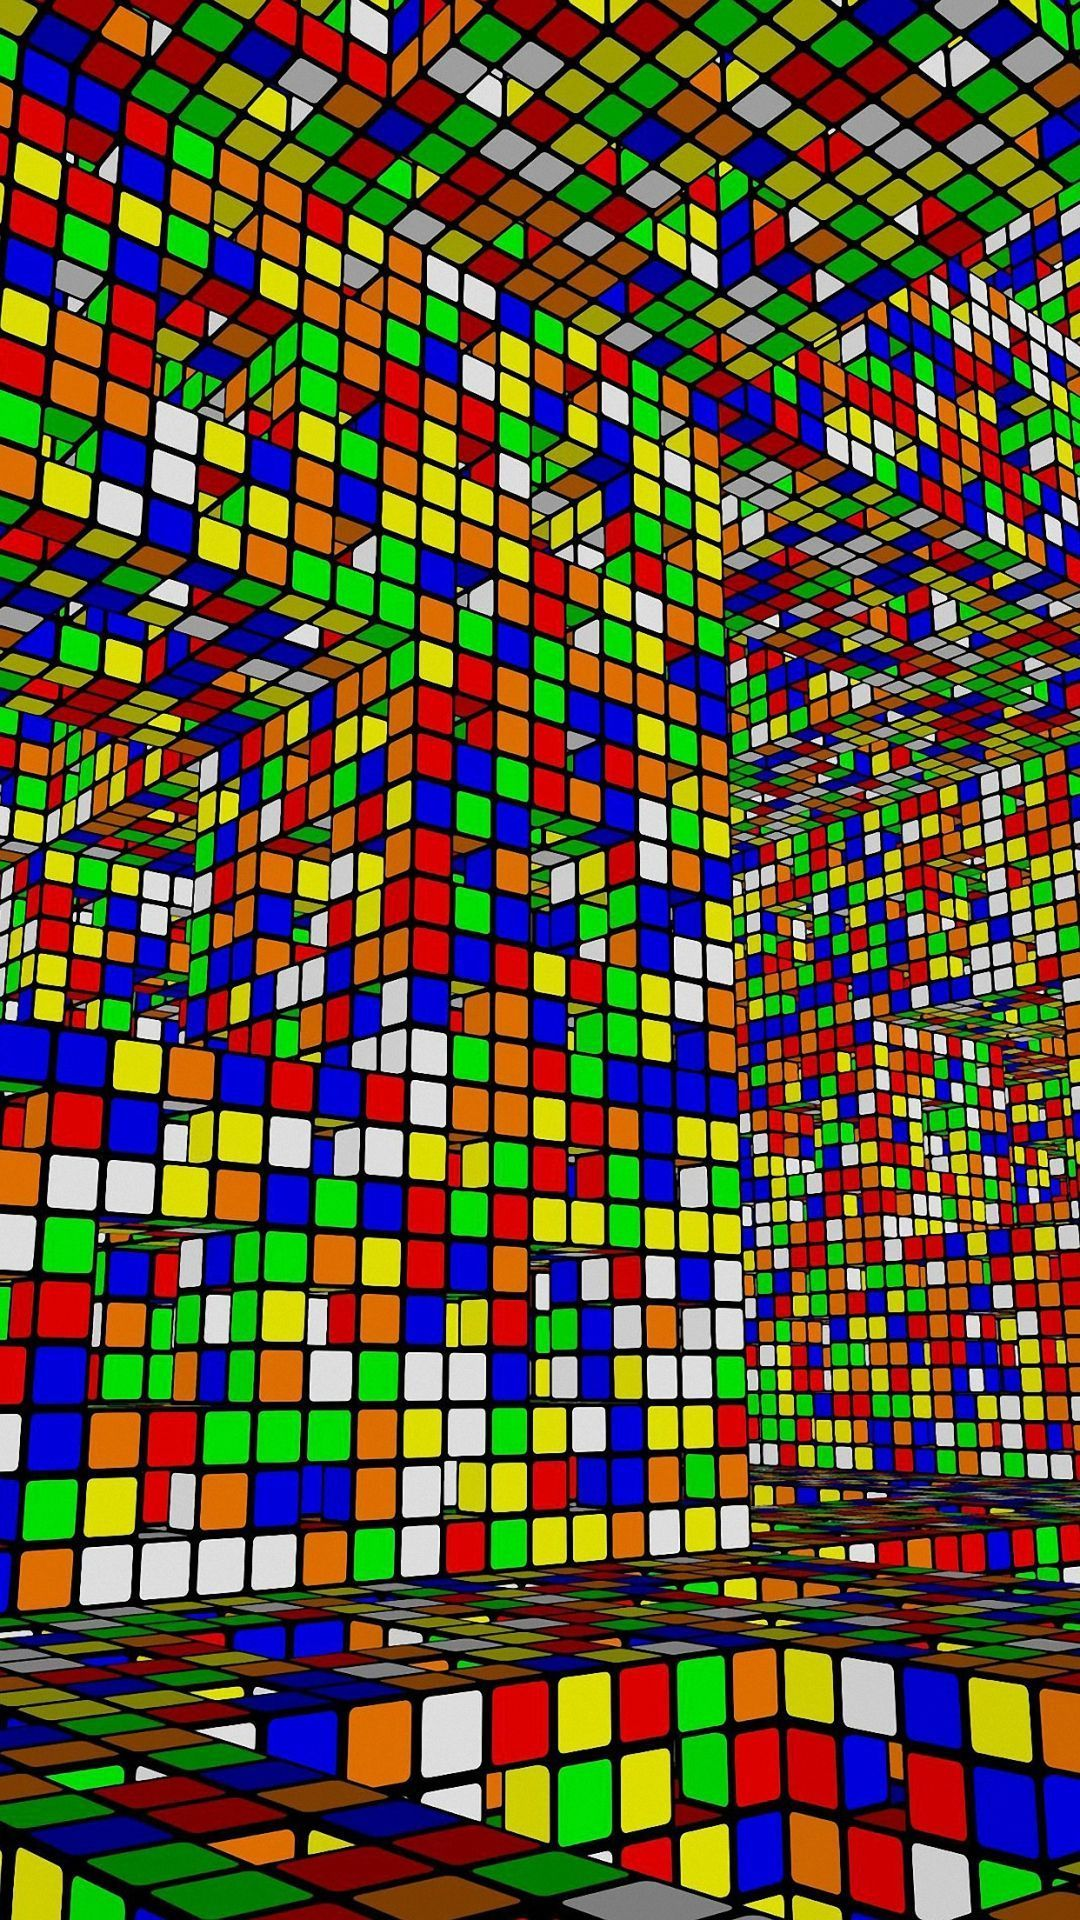 Colorful 3D Blocks Design Iphone Wallpapers Hd Iphone